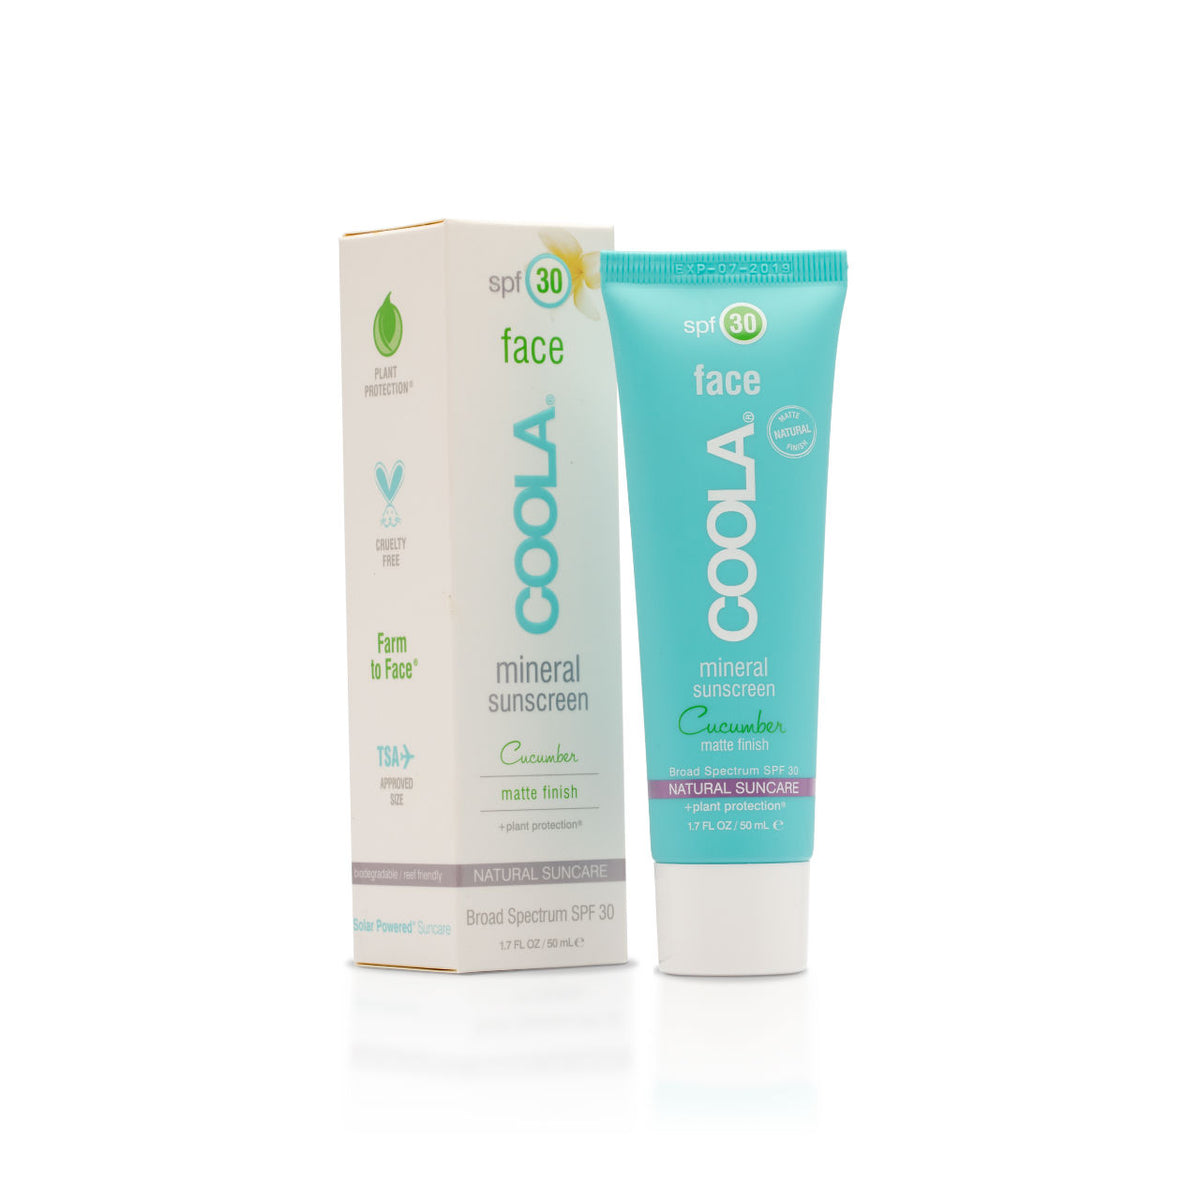 COOLA Mineral Face SPF 30 Cucumber Matte Finish